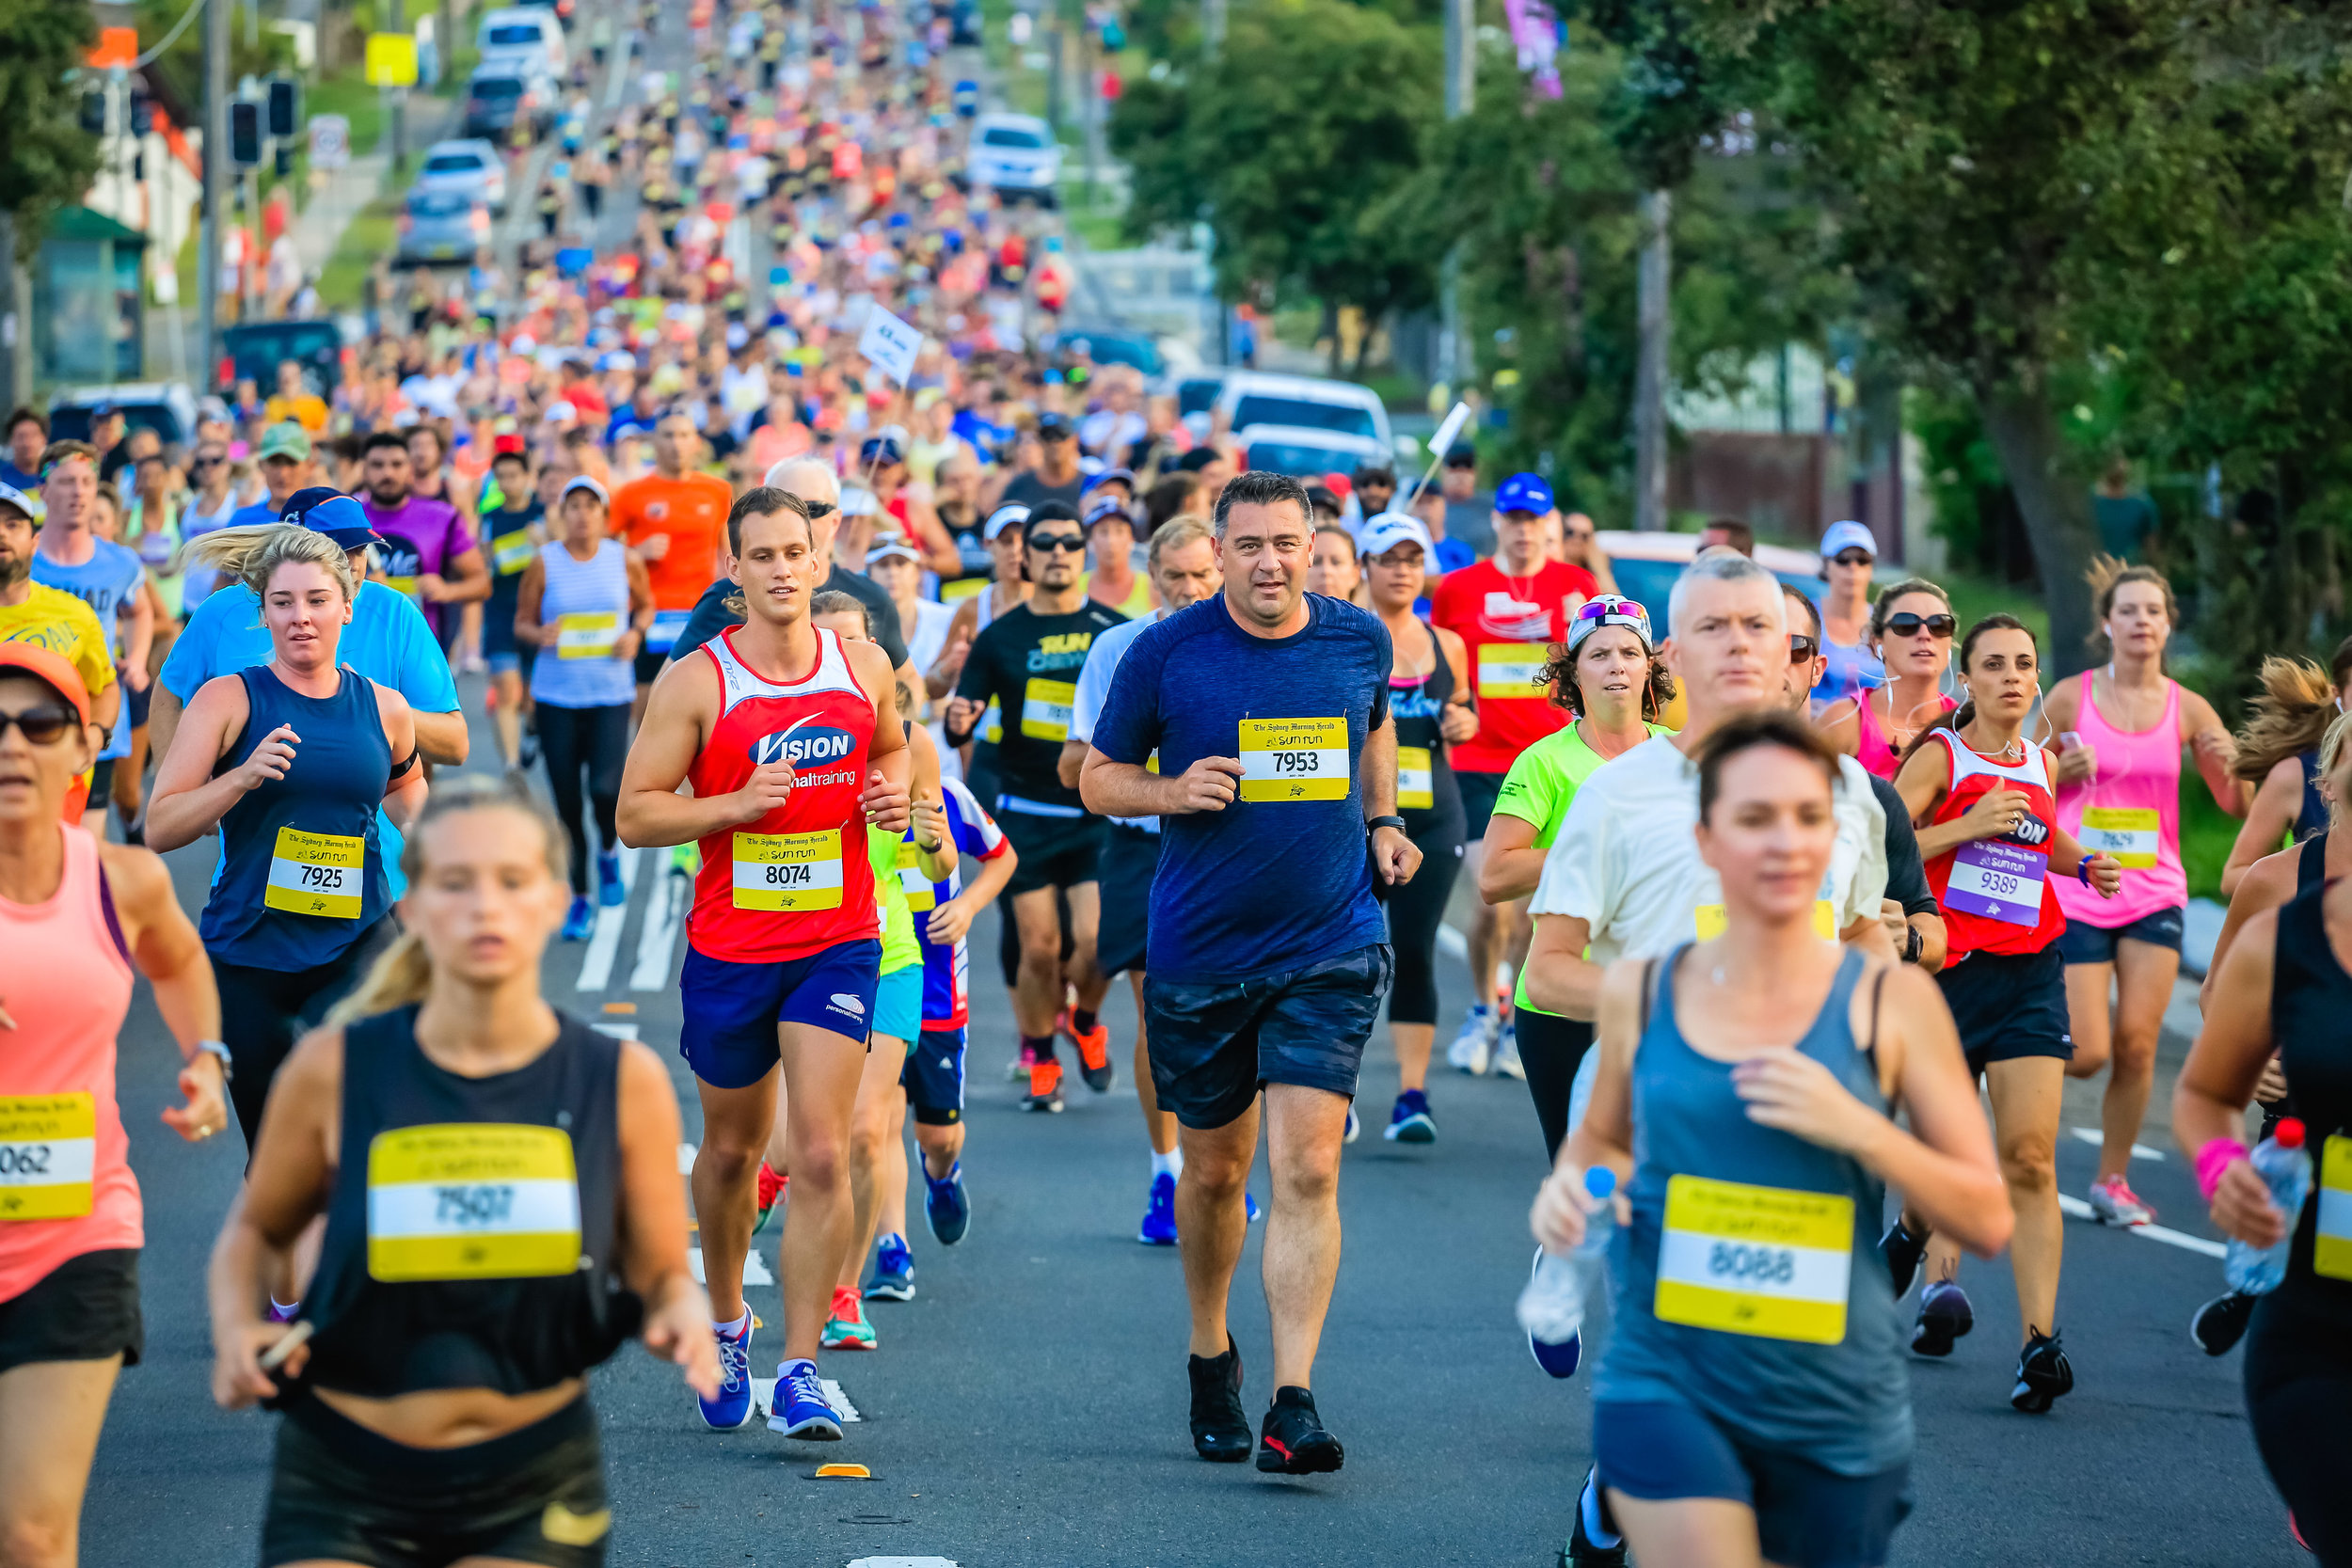 CHECK OUT THE 2019 SUN RUN HIGHLIGHTS HERE!